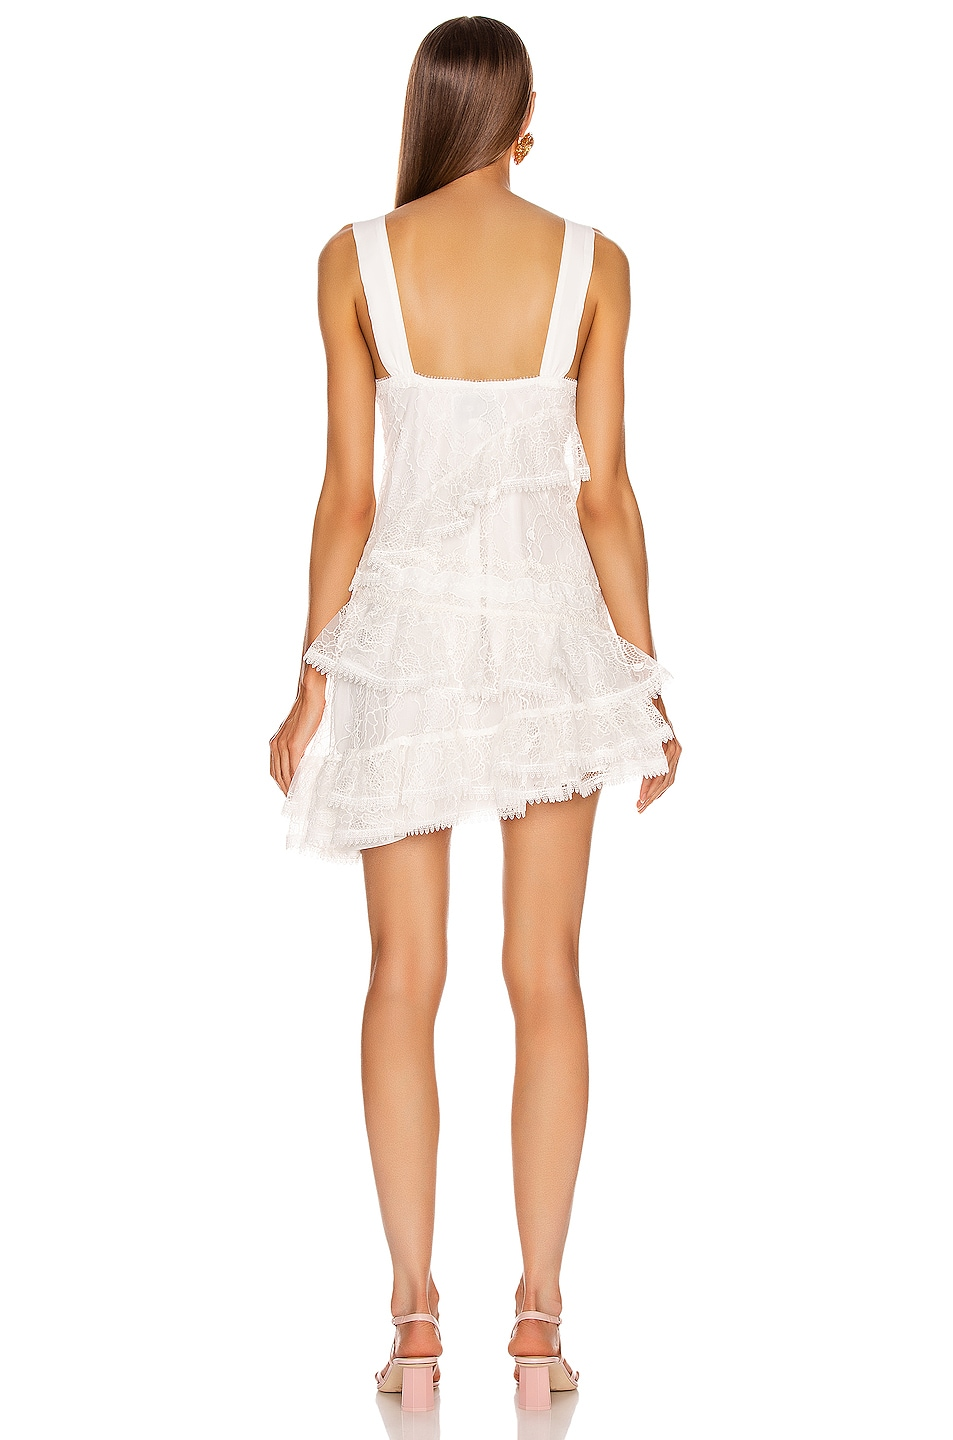 Image 3 of Alexis Ladonna Dress in White